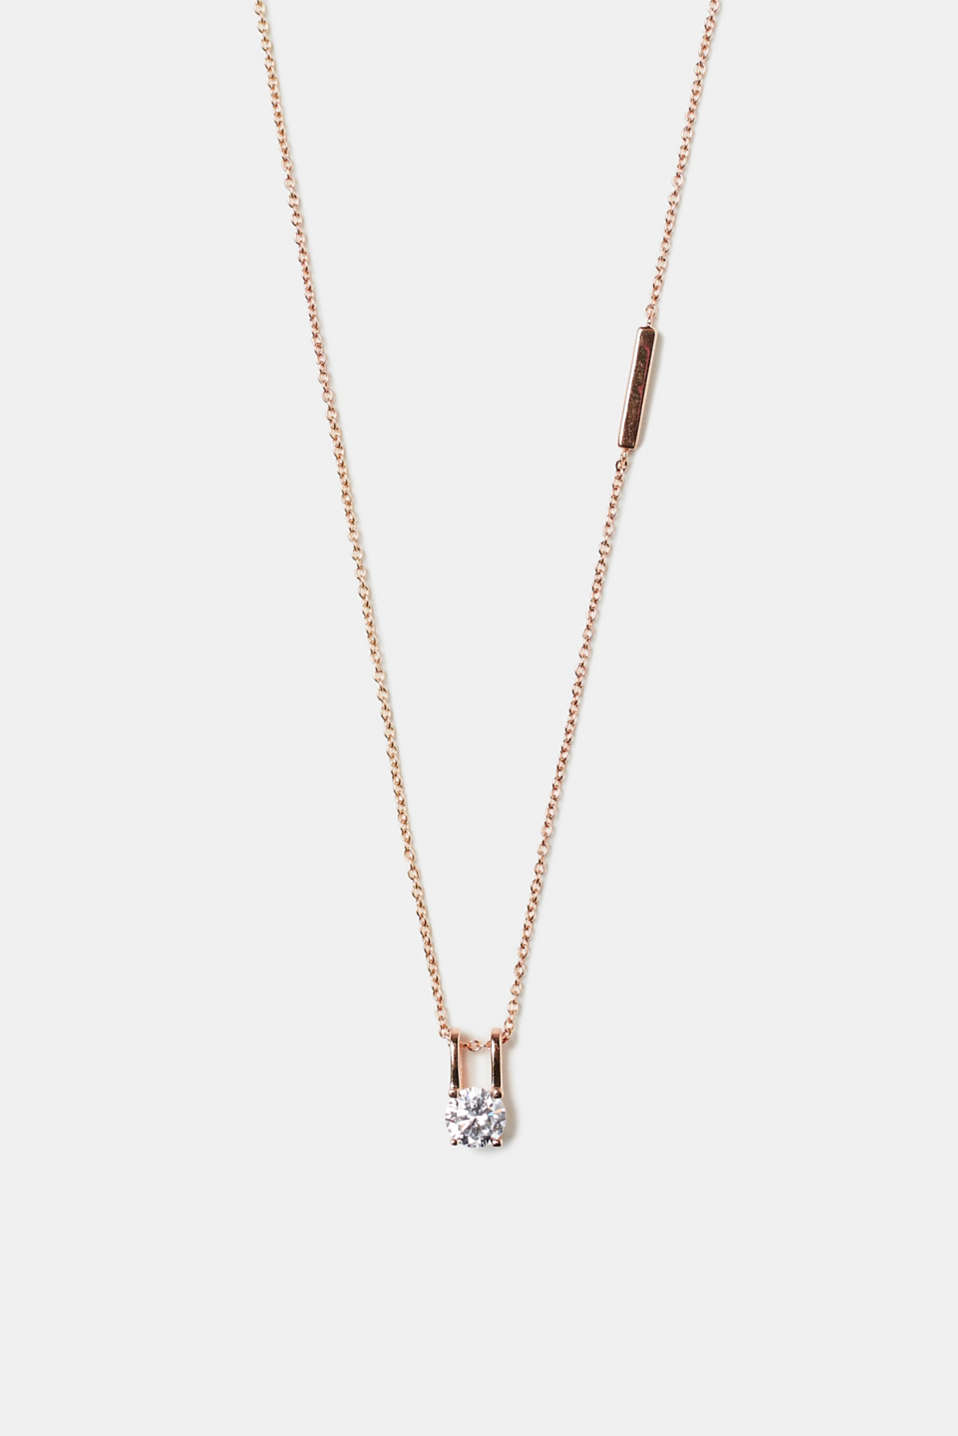 Esprit - Fine necklace with pendant in rose gold